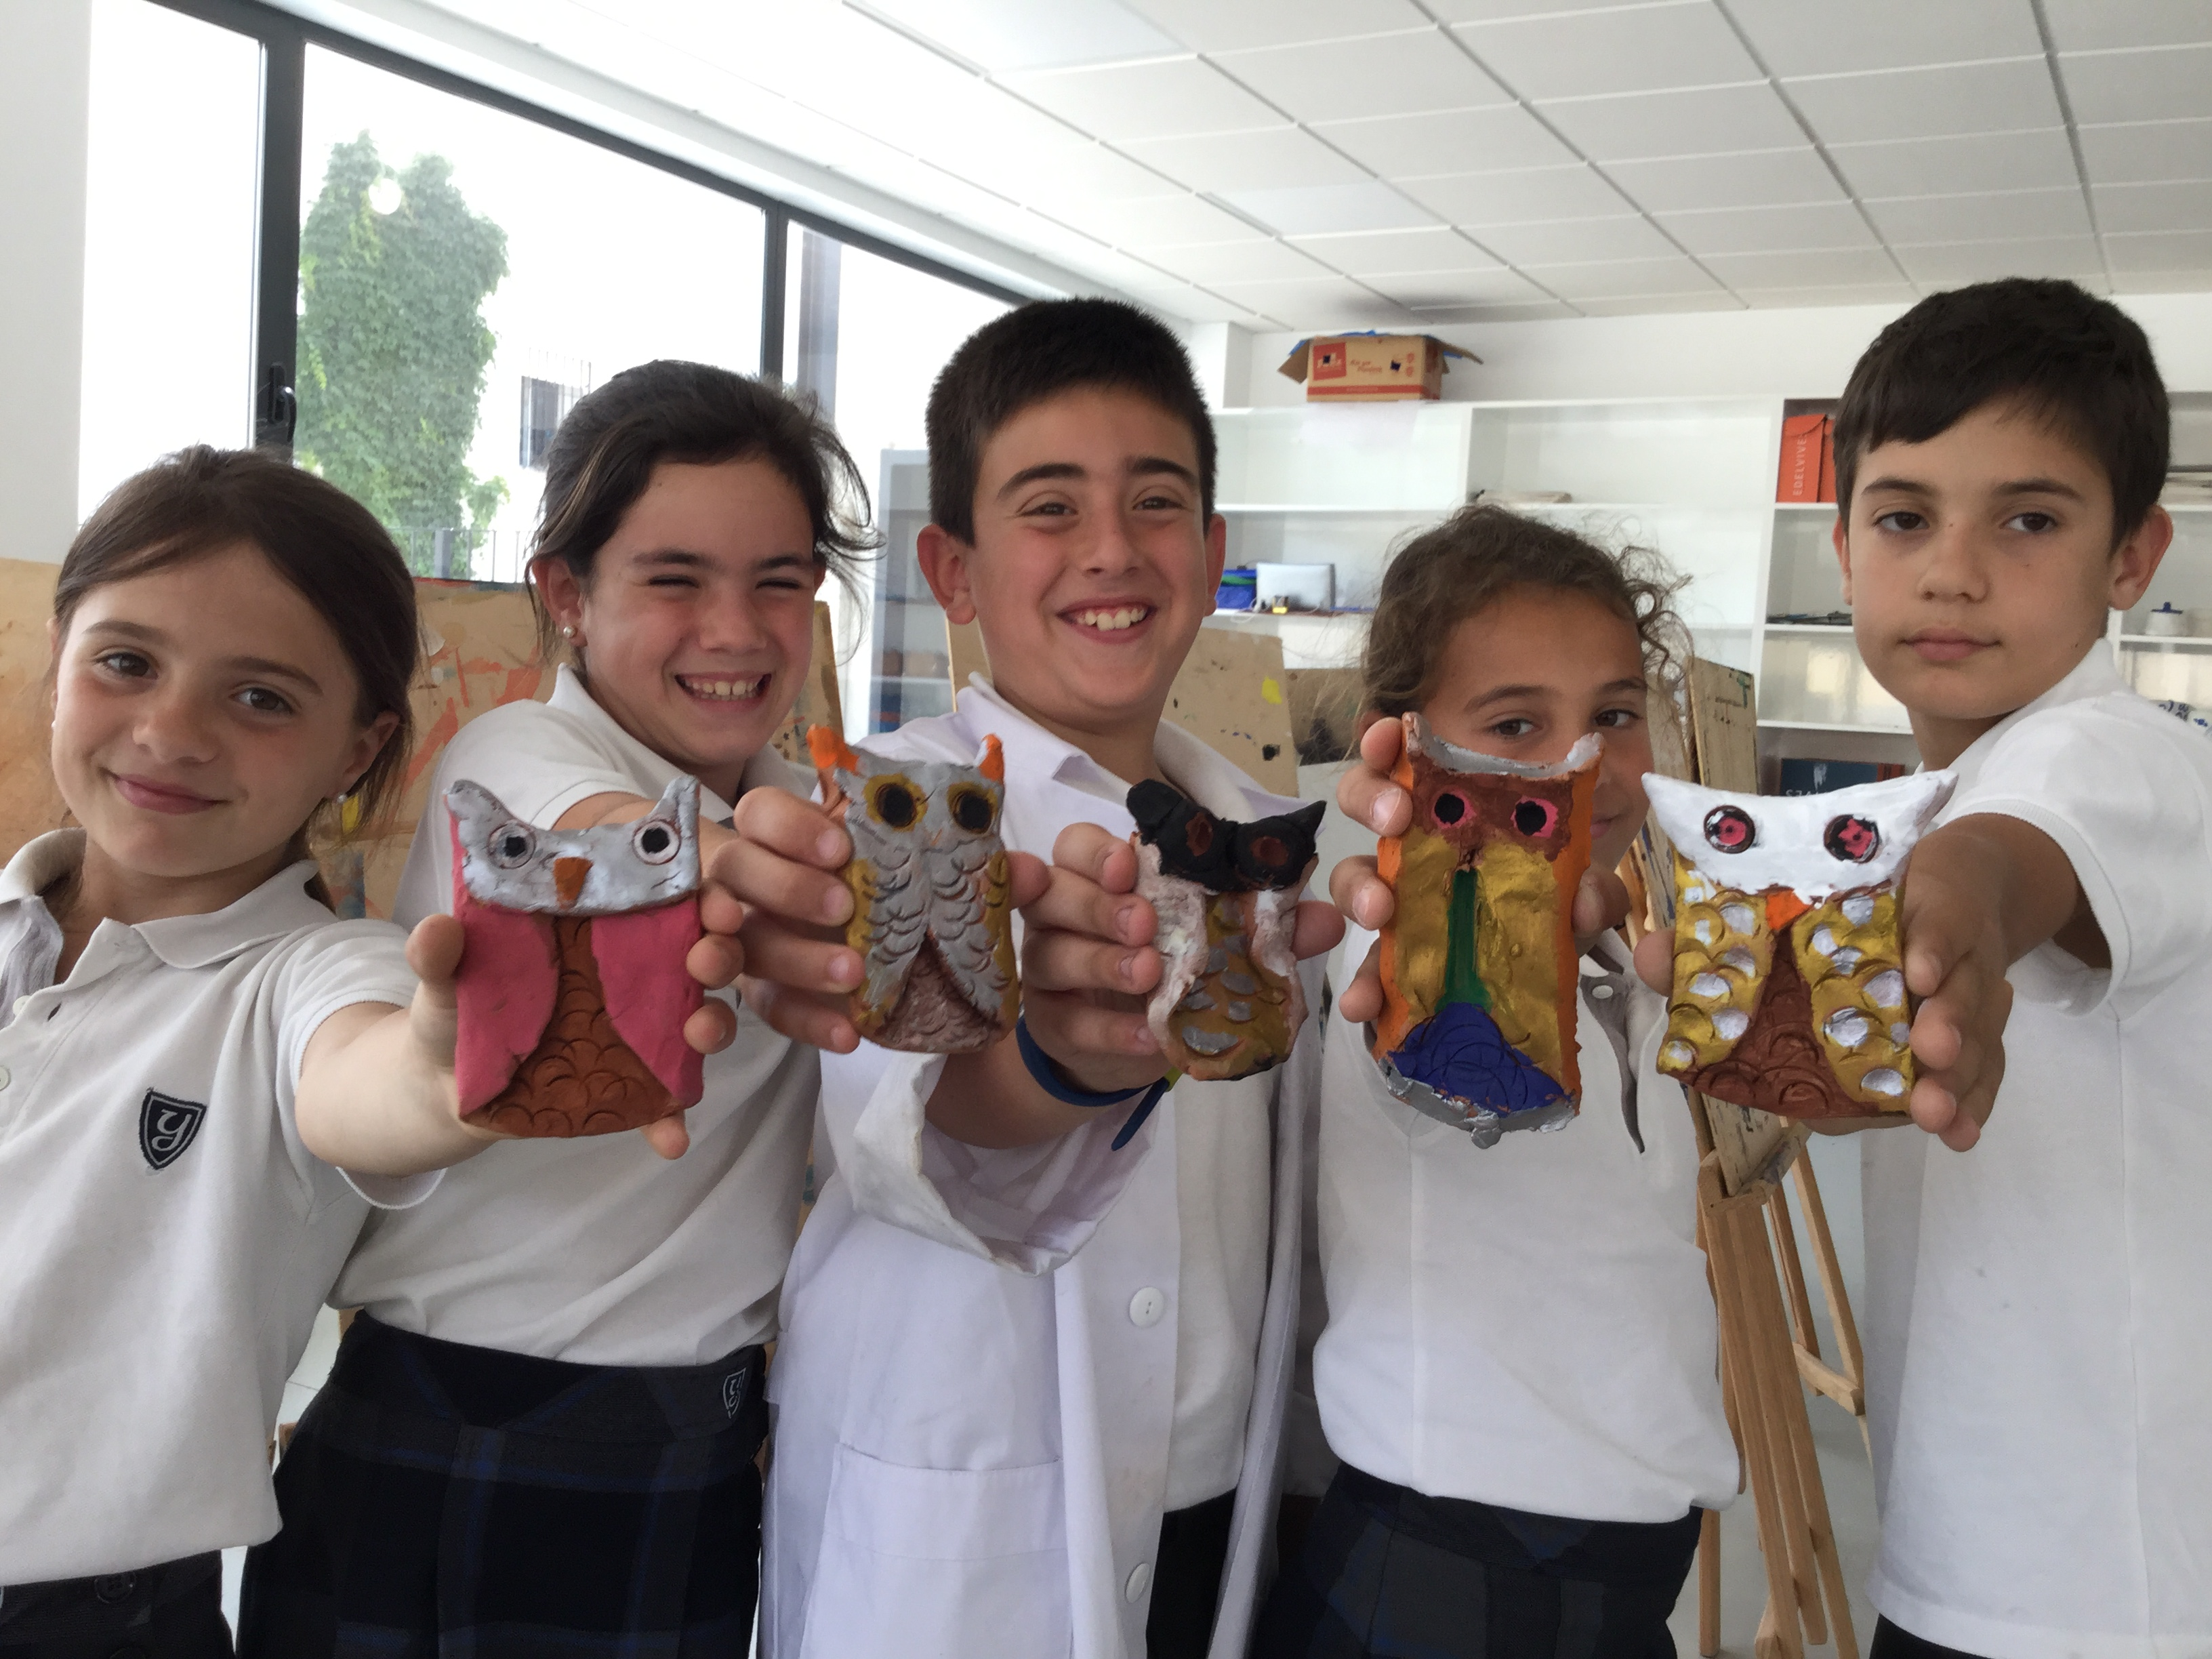 At Yago School we use PBL to learn art